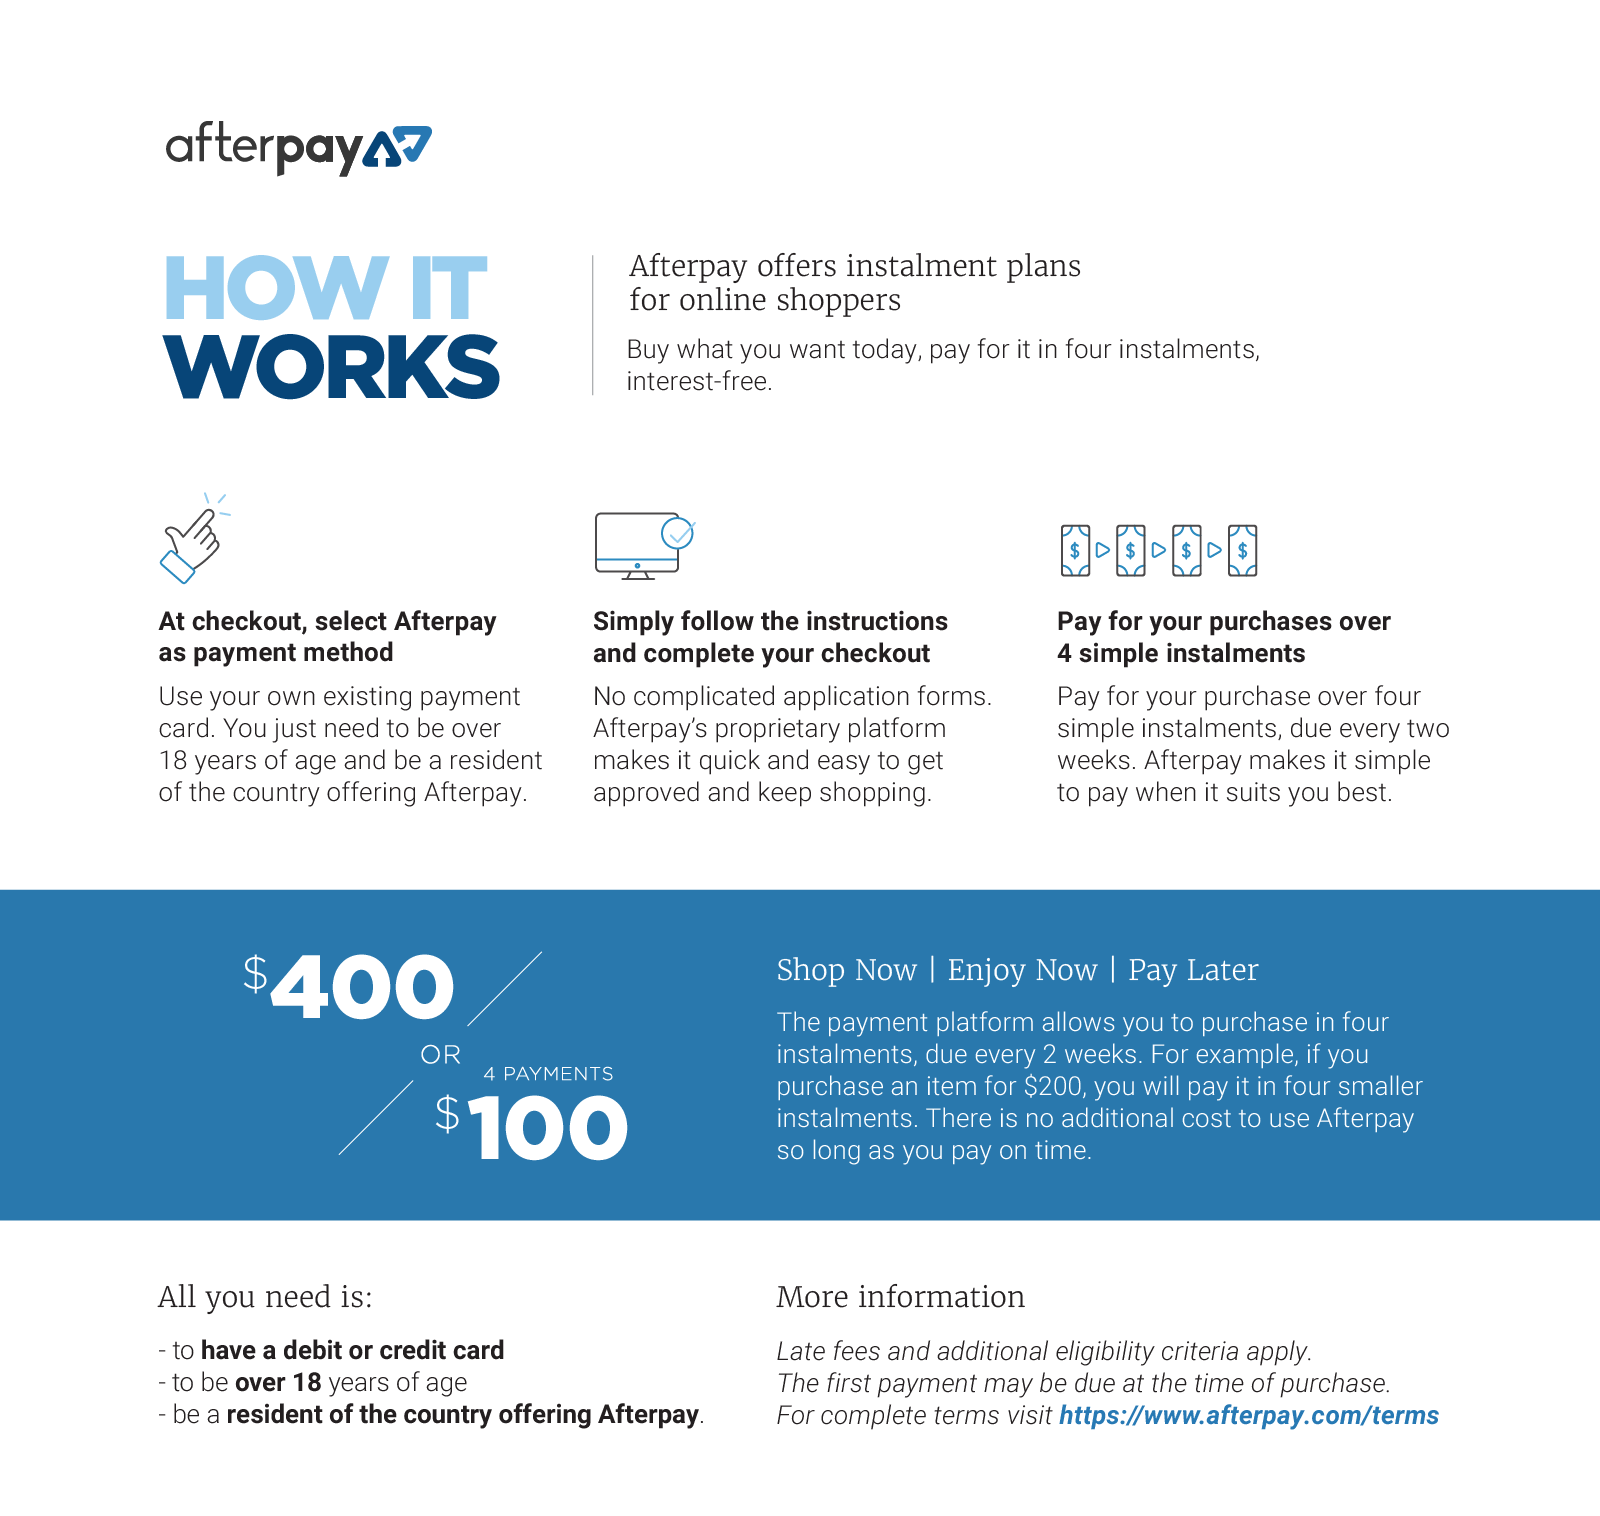 Afterpay - How it Works - For Desktop